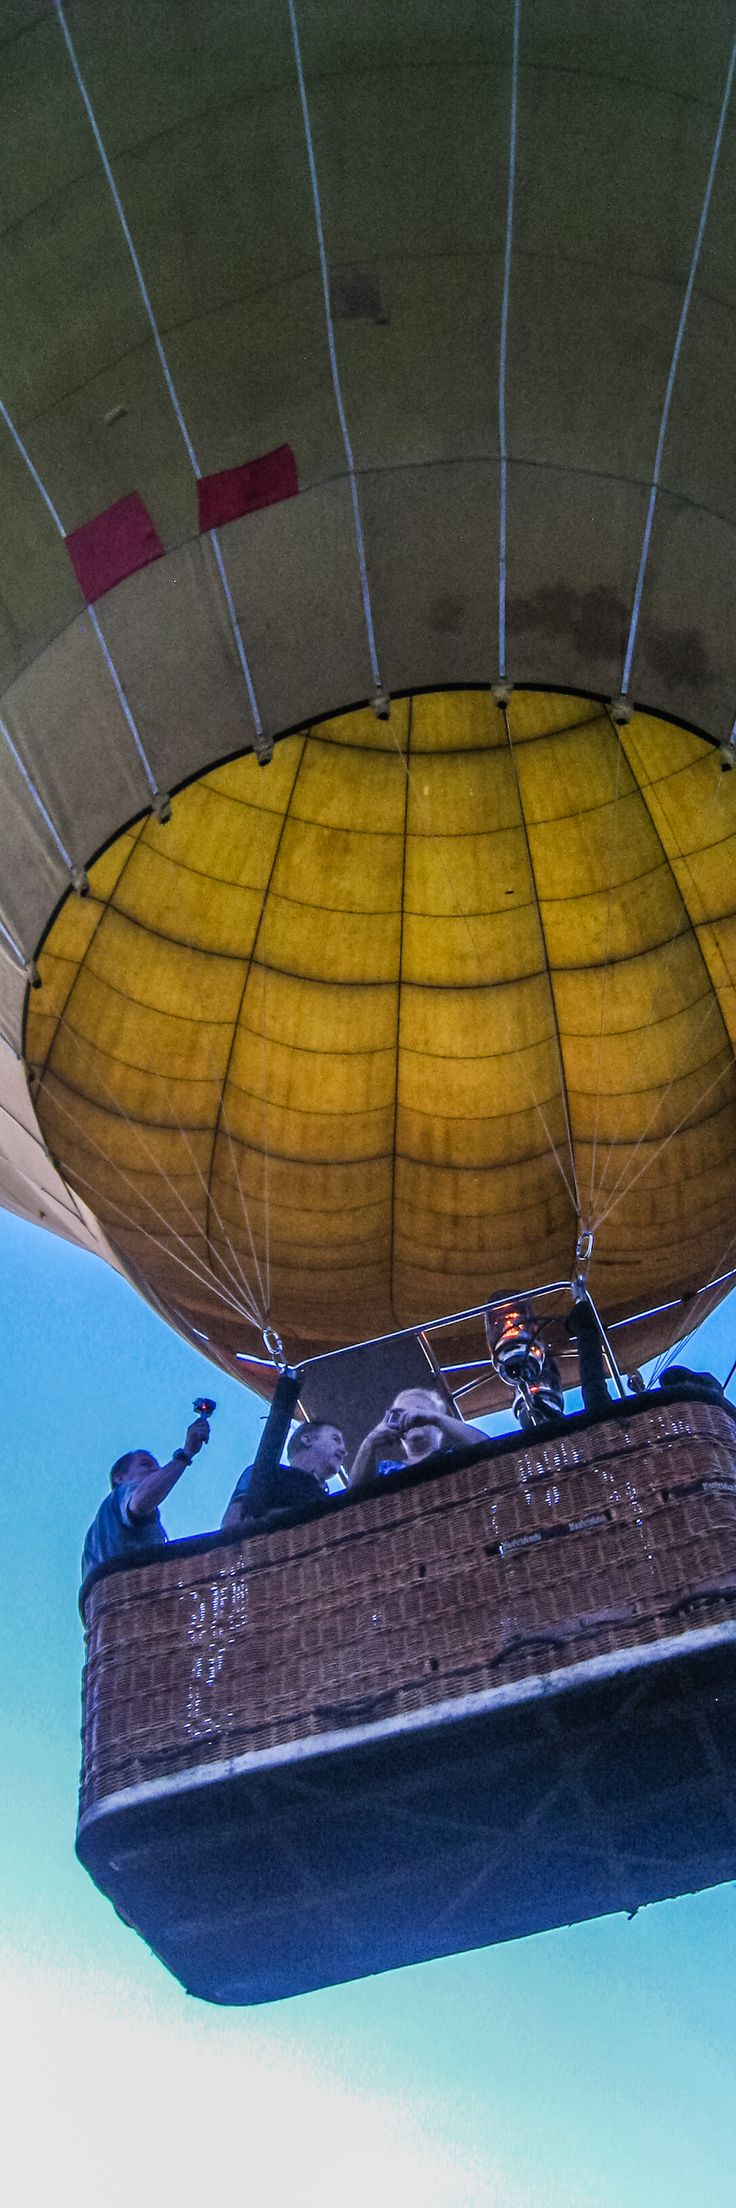 Can't wait to do this with you. ~ETS (Hot Air Ballooning in Vang Vieng, Laos)